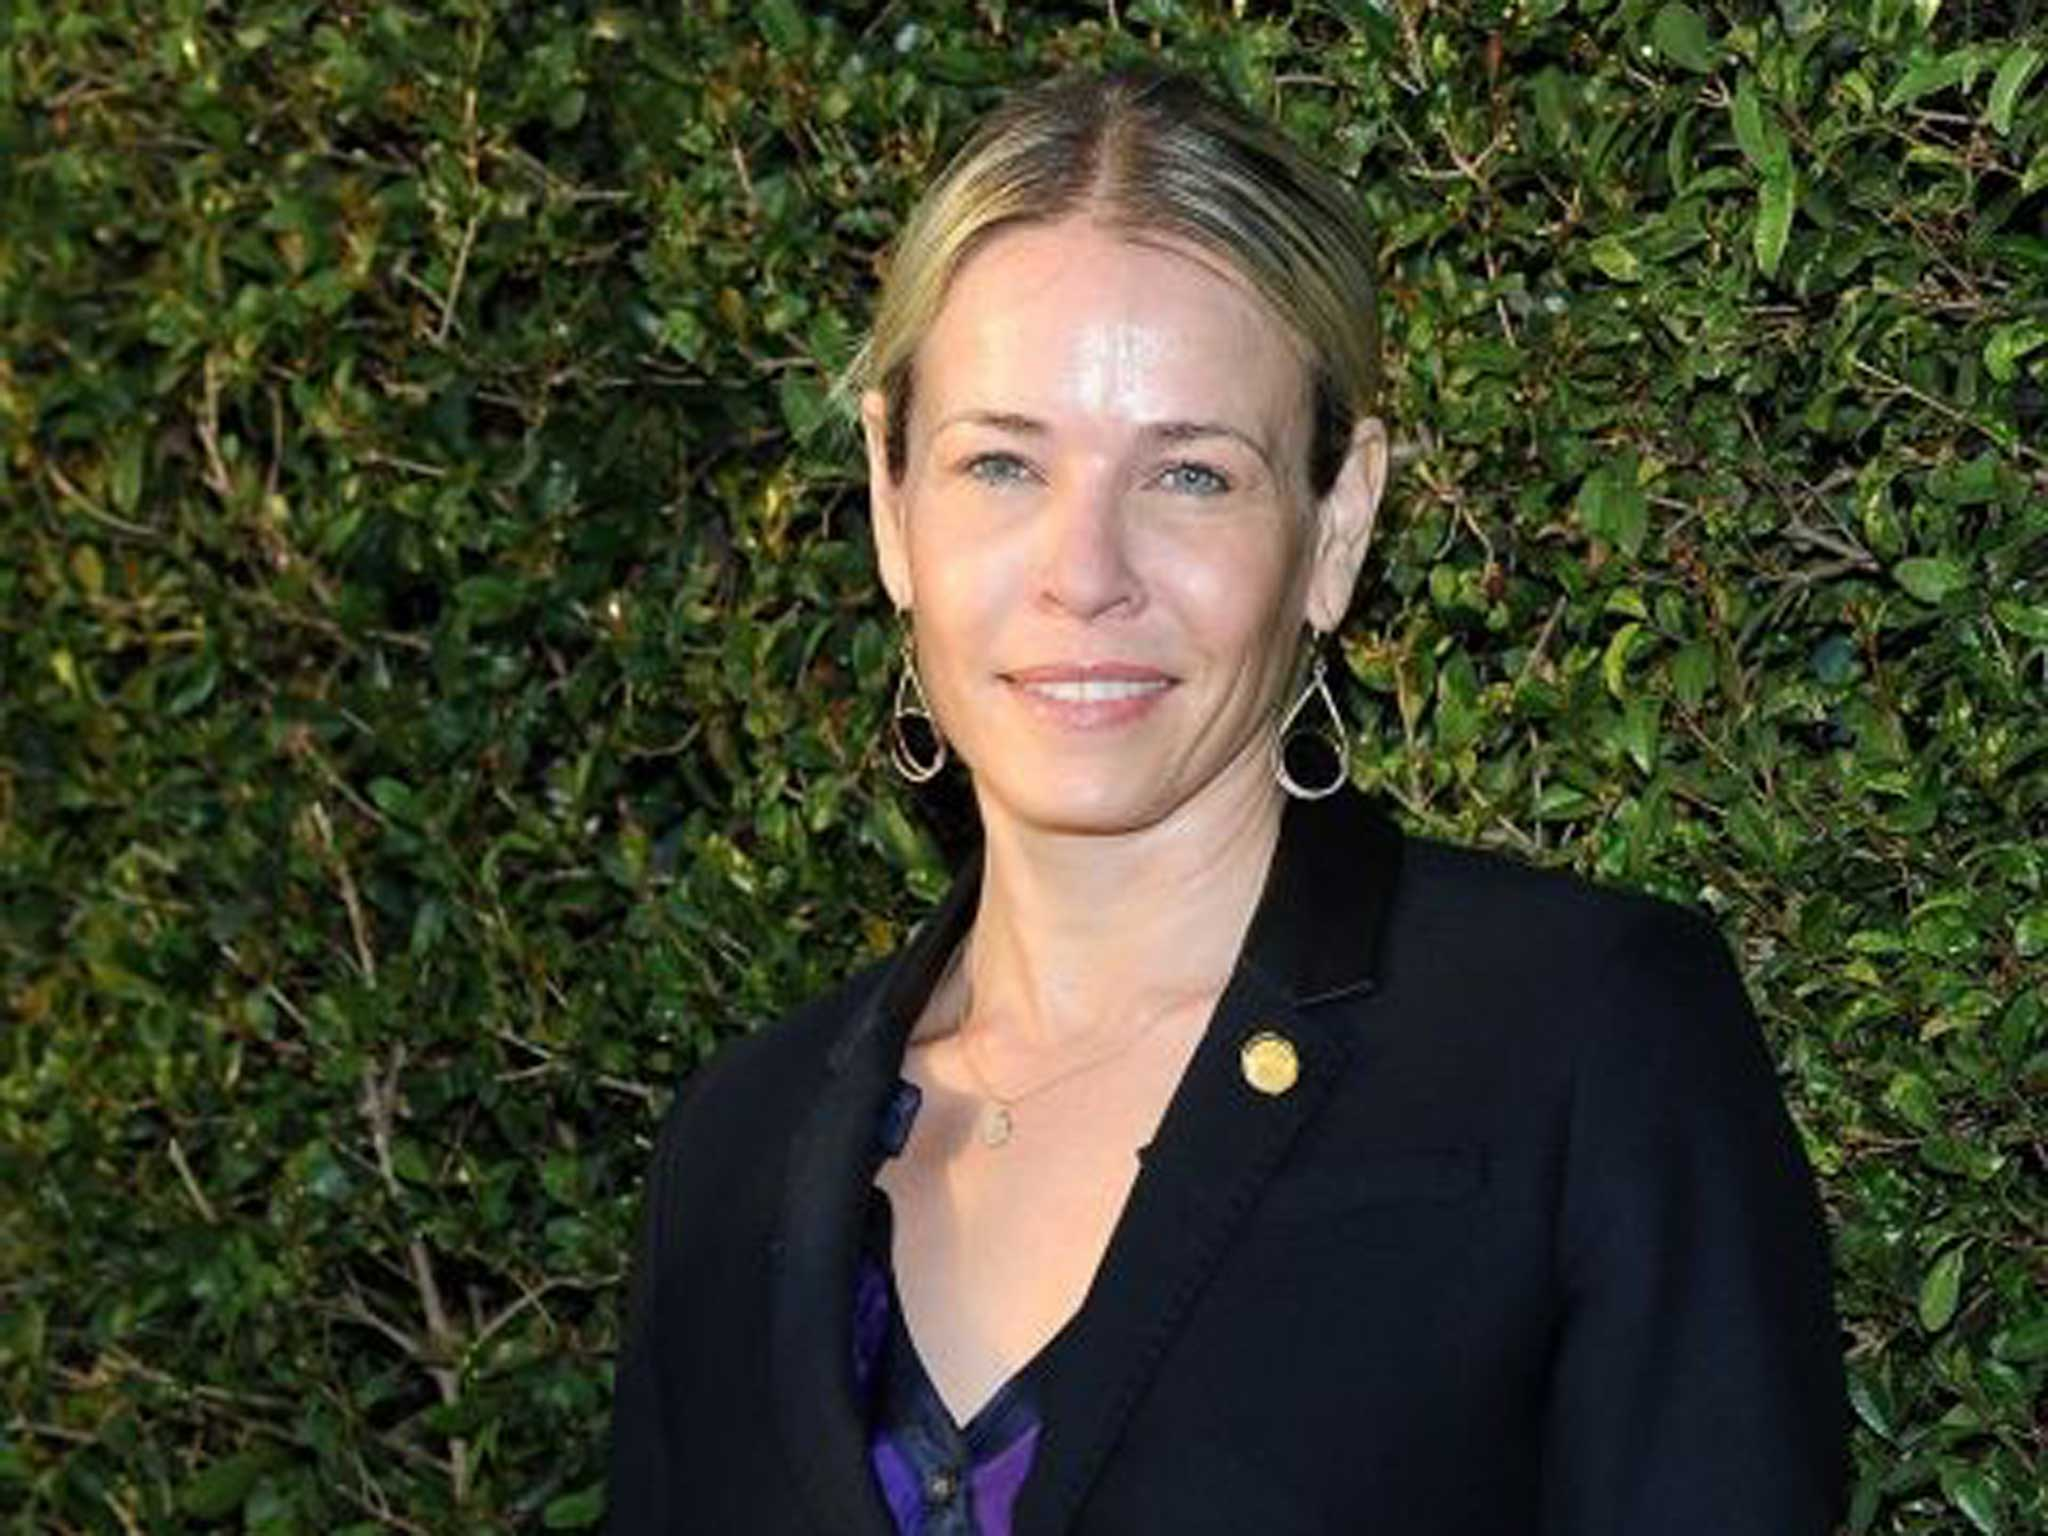 chelsea handler writes essay on why she will never regret having chelsea handler writes essay on why she will never regret having two abortions the independent